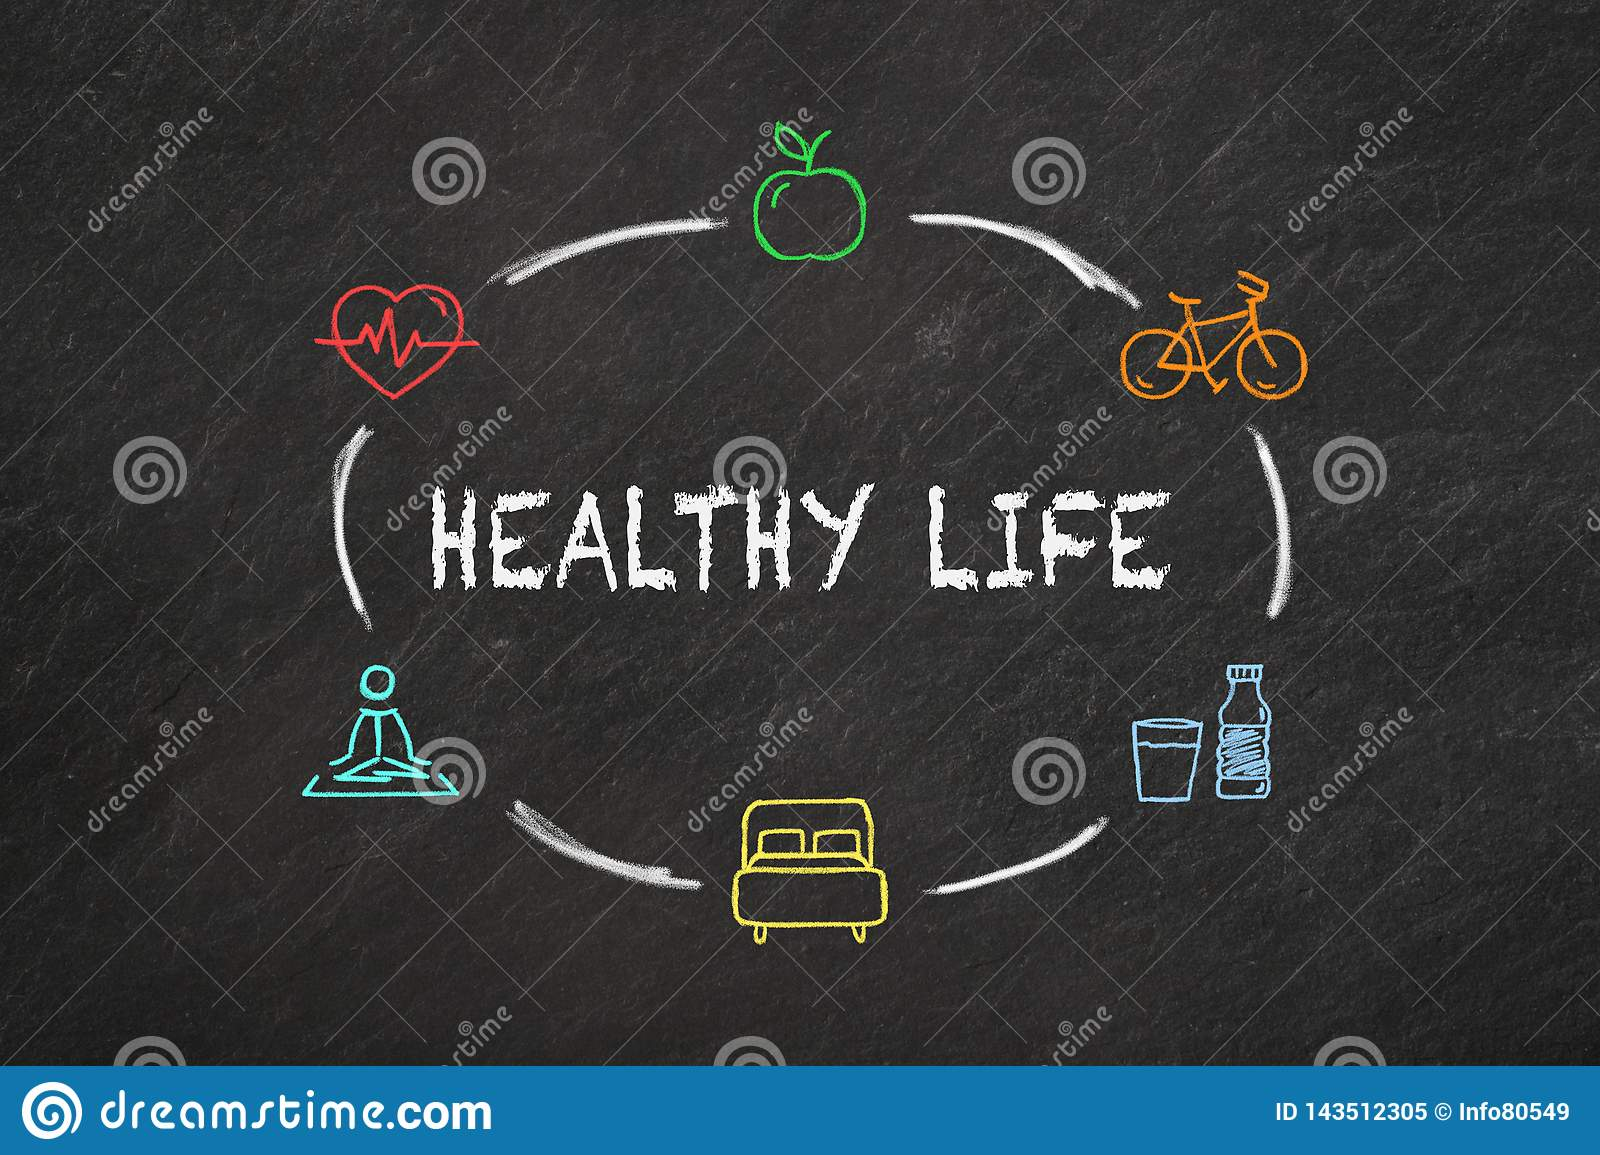 `Healthy life` text and colourful icons on a blackboard.